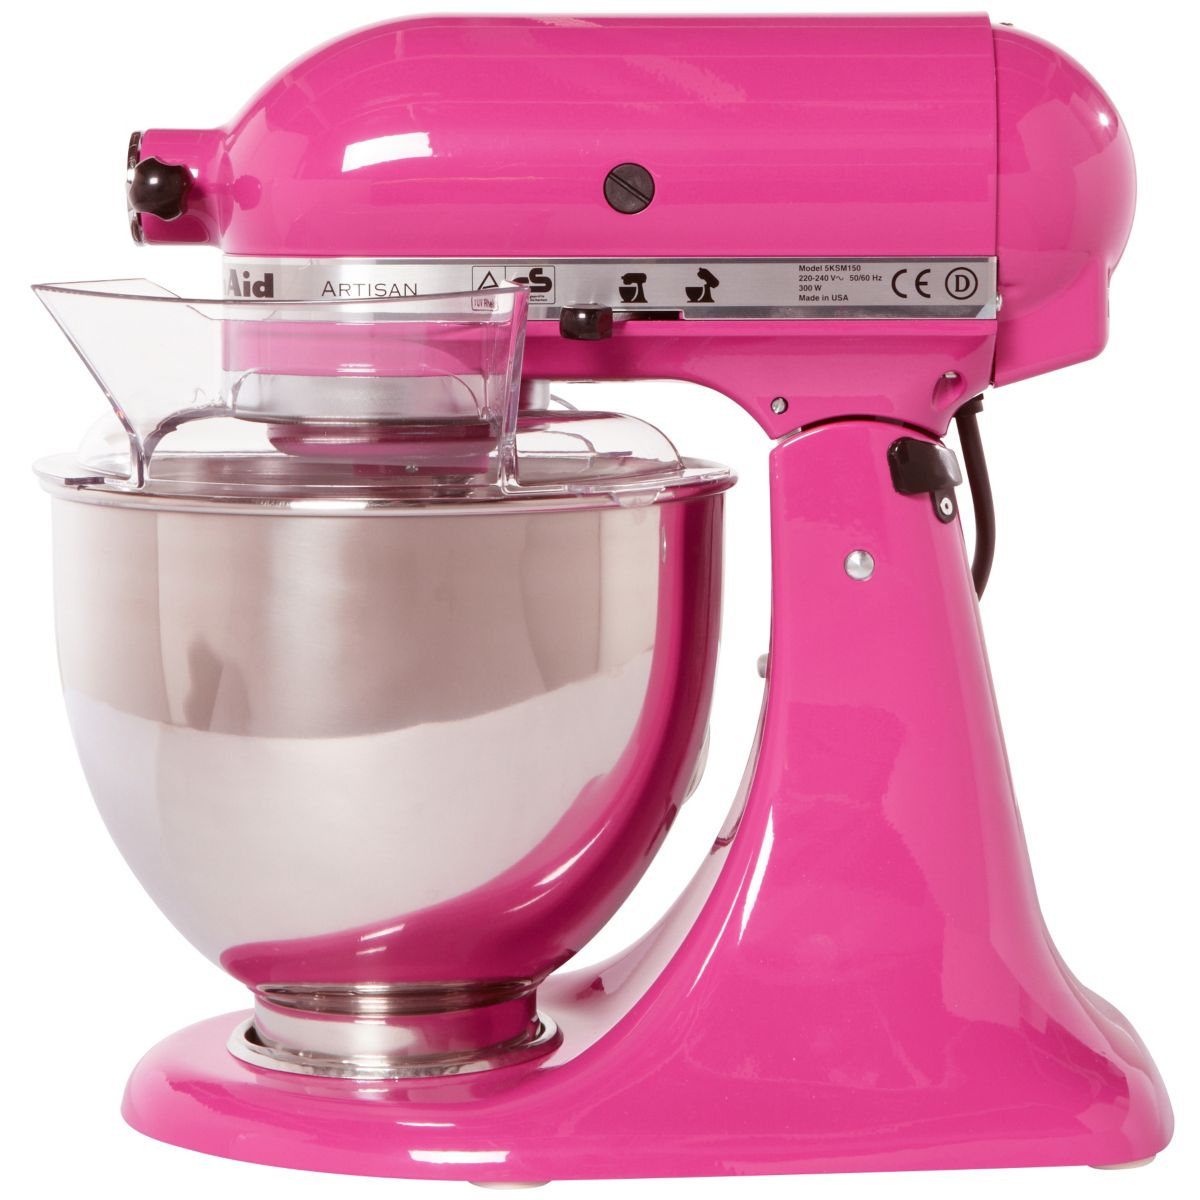 Robot Sur Socle 5ksm150ps Ecb Rose Fuschia Artisan Kitchenaid